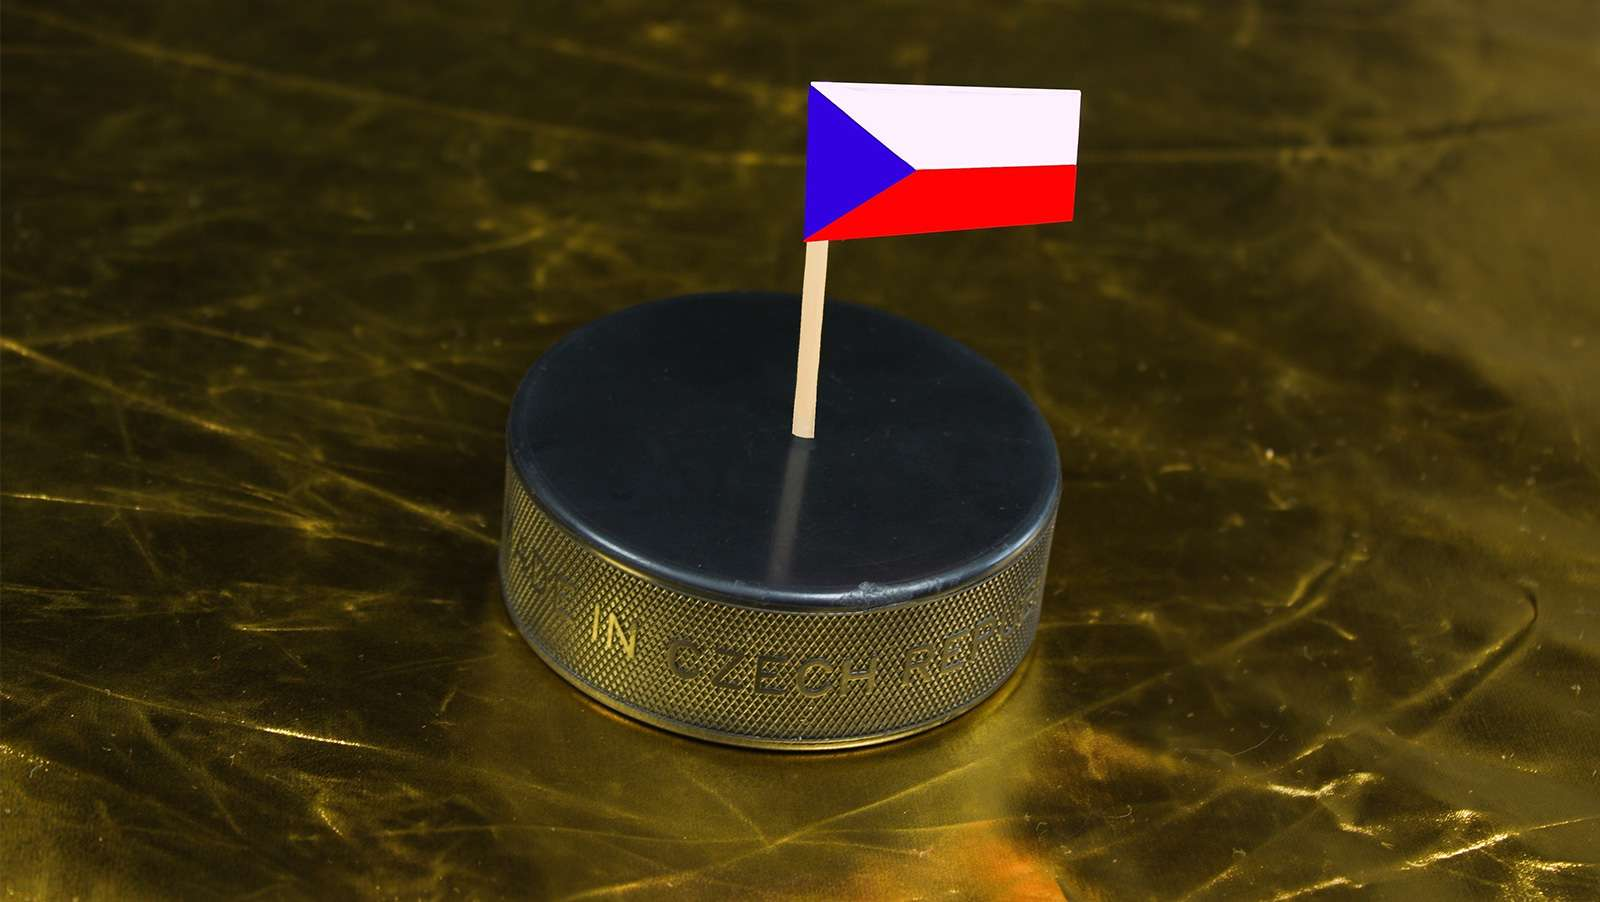 Czech online gambling market spikes after regulatory revamp